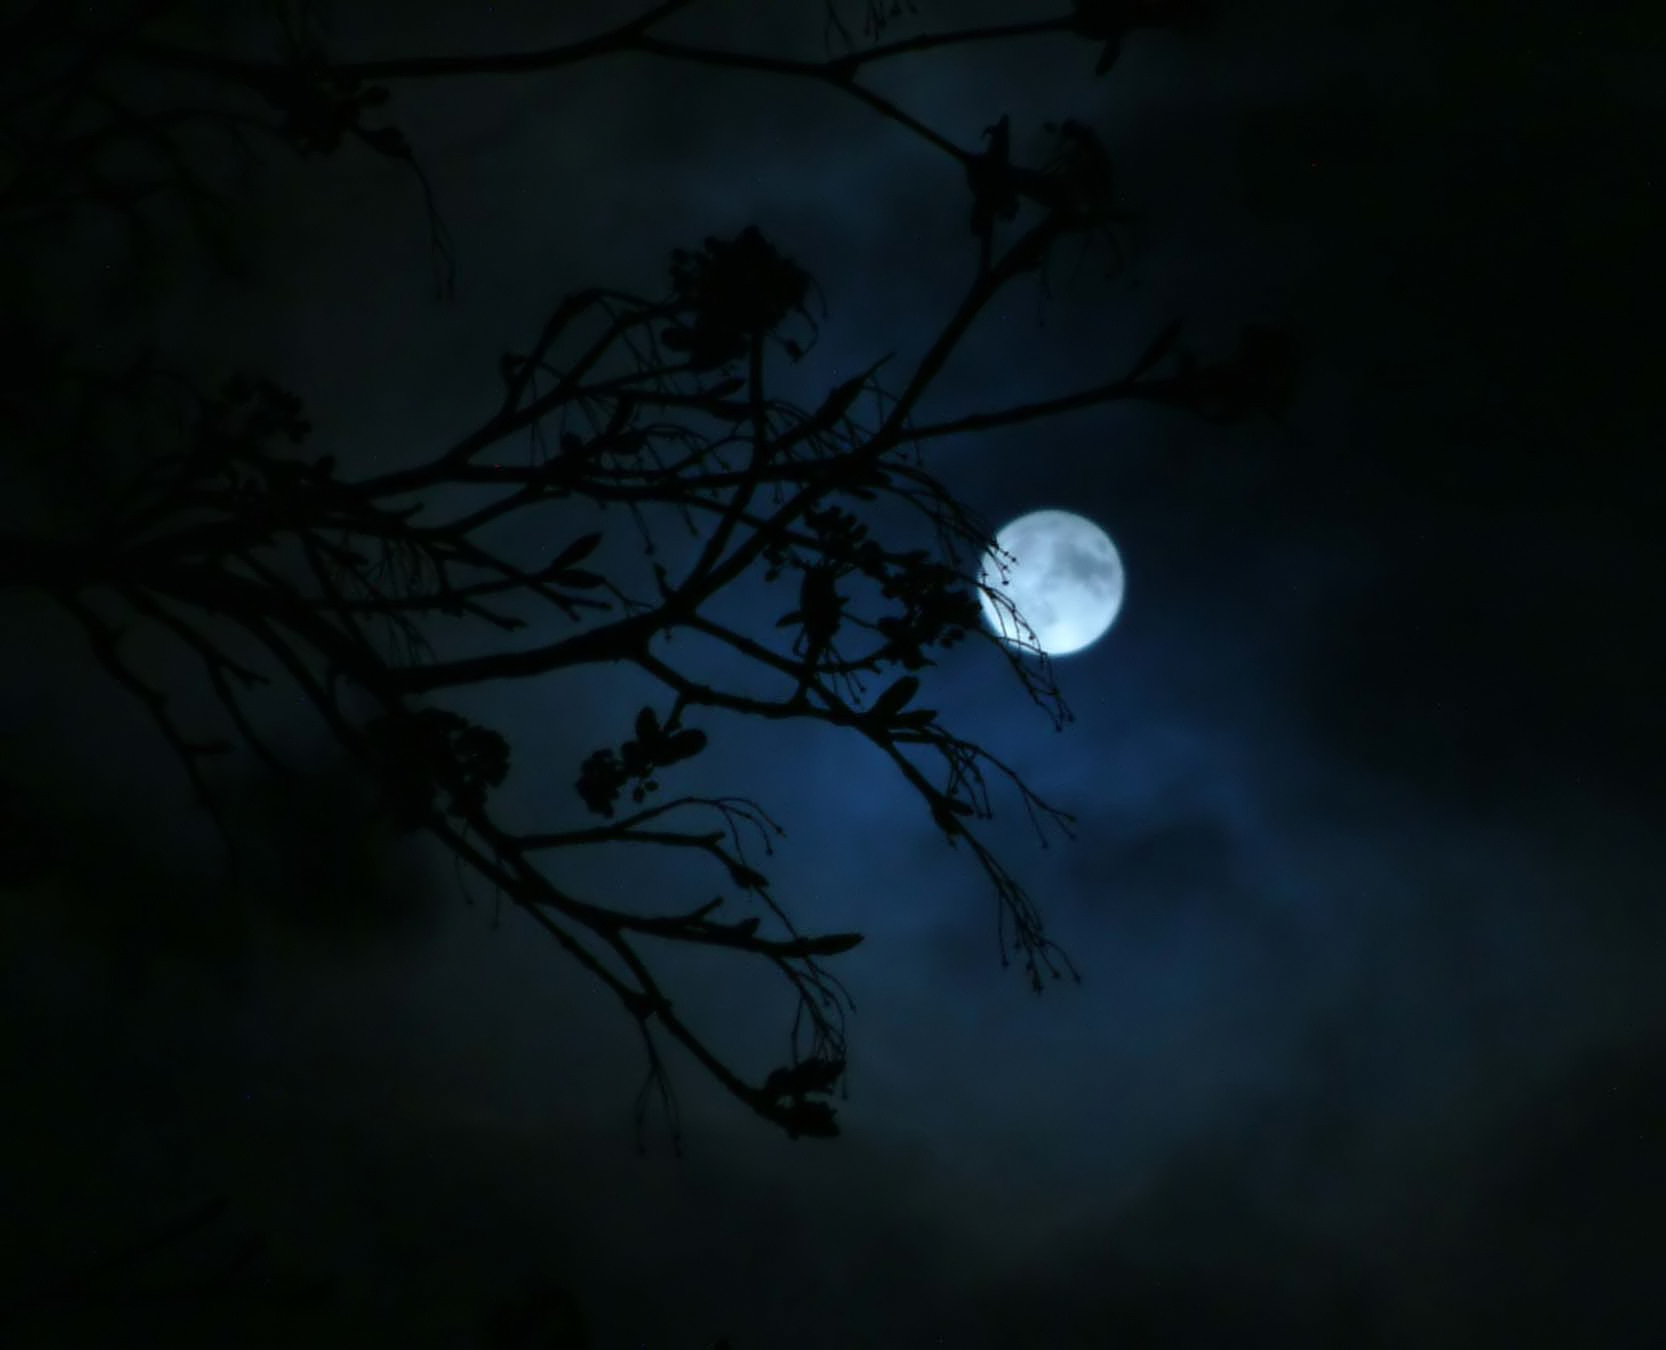 ... night sky dark moon black spring sea fullmoon buds late shoots cloudy